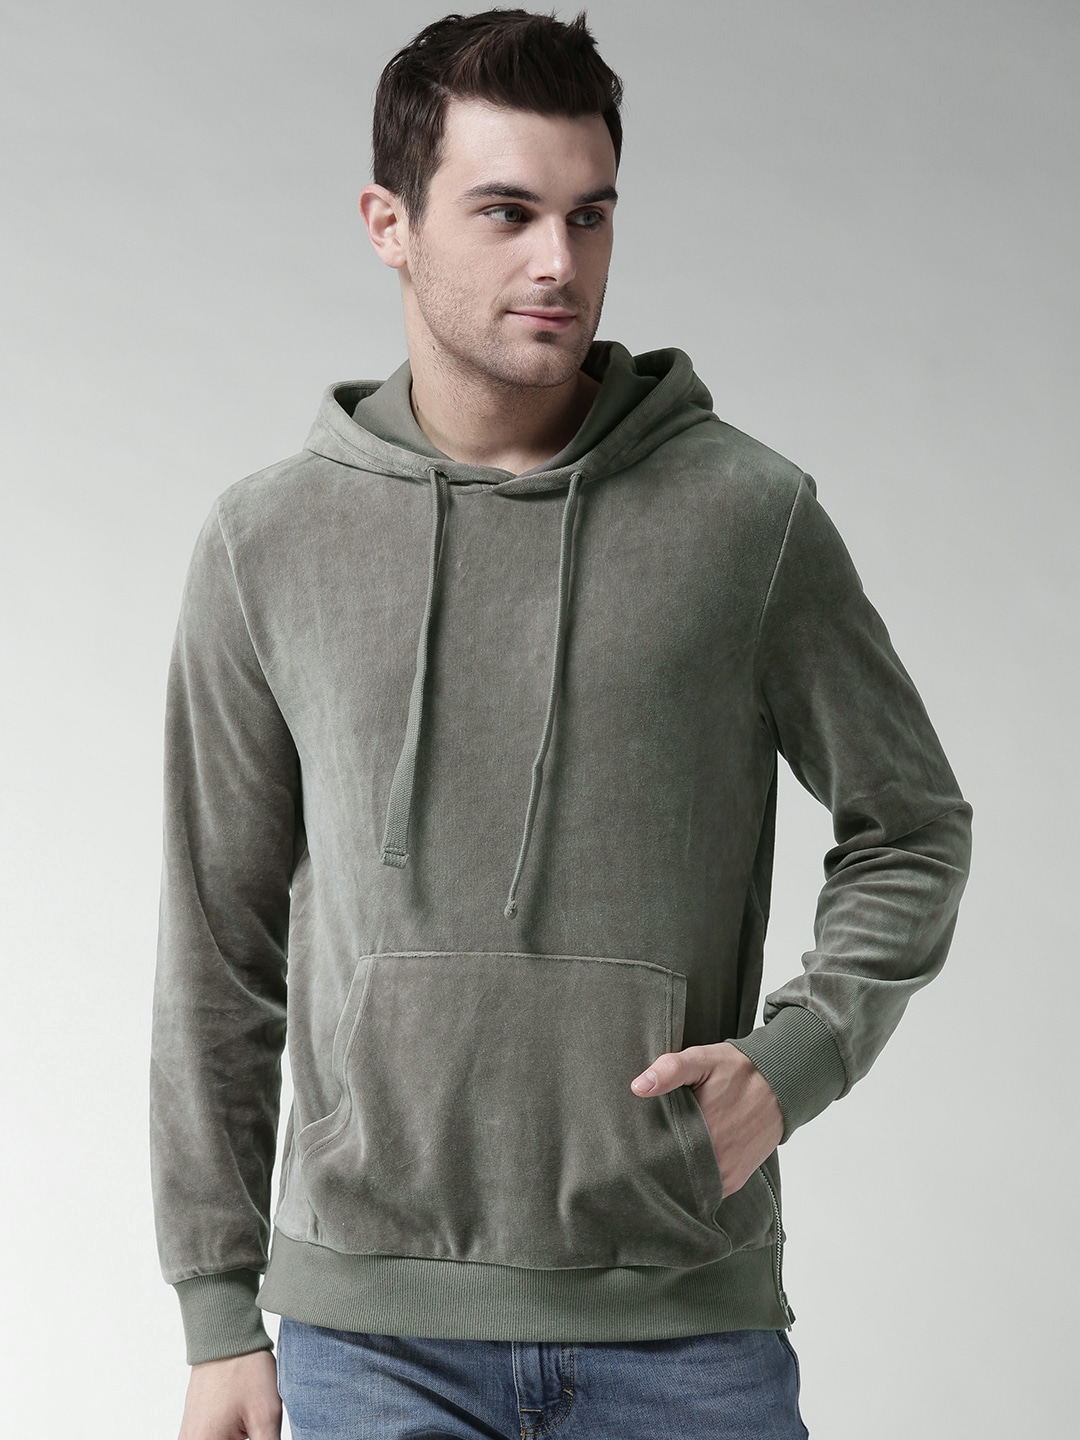 Buy FOREVER 21 Grey Solid Hooded Velvet-Finish Men's Sweatshirt At Best Price In India